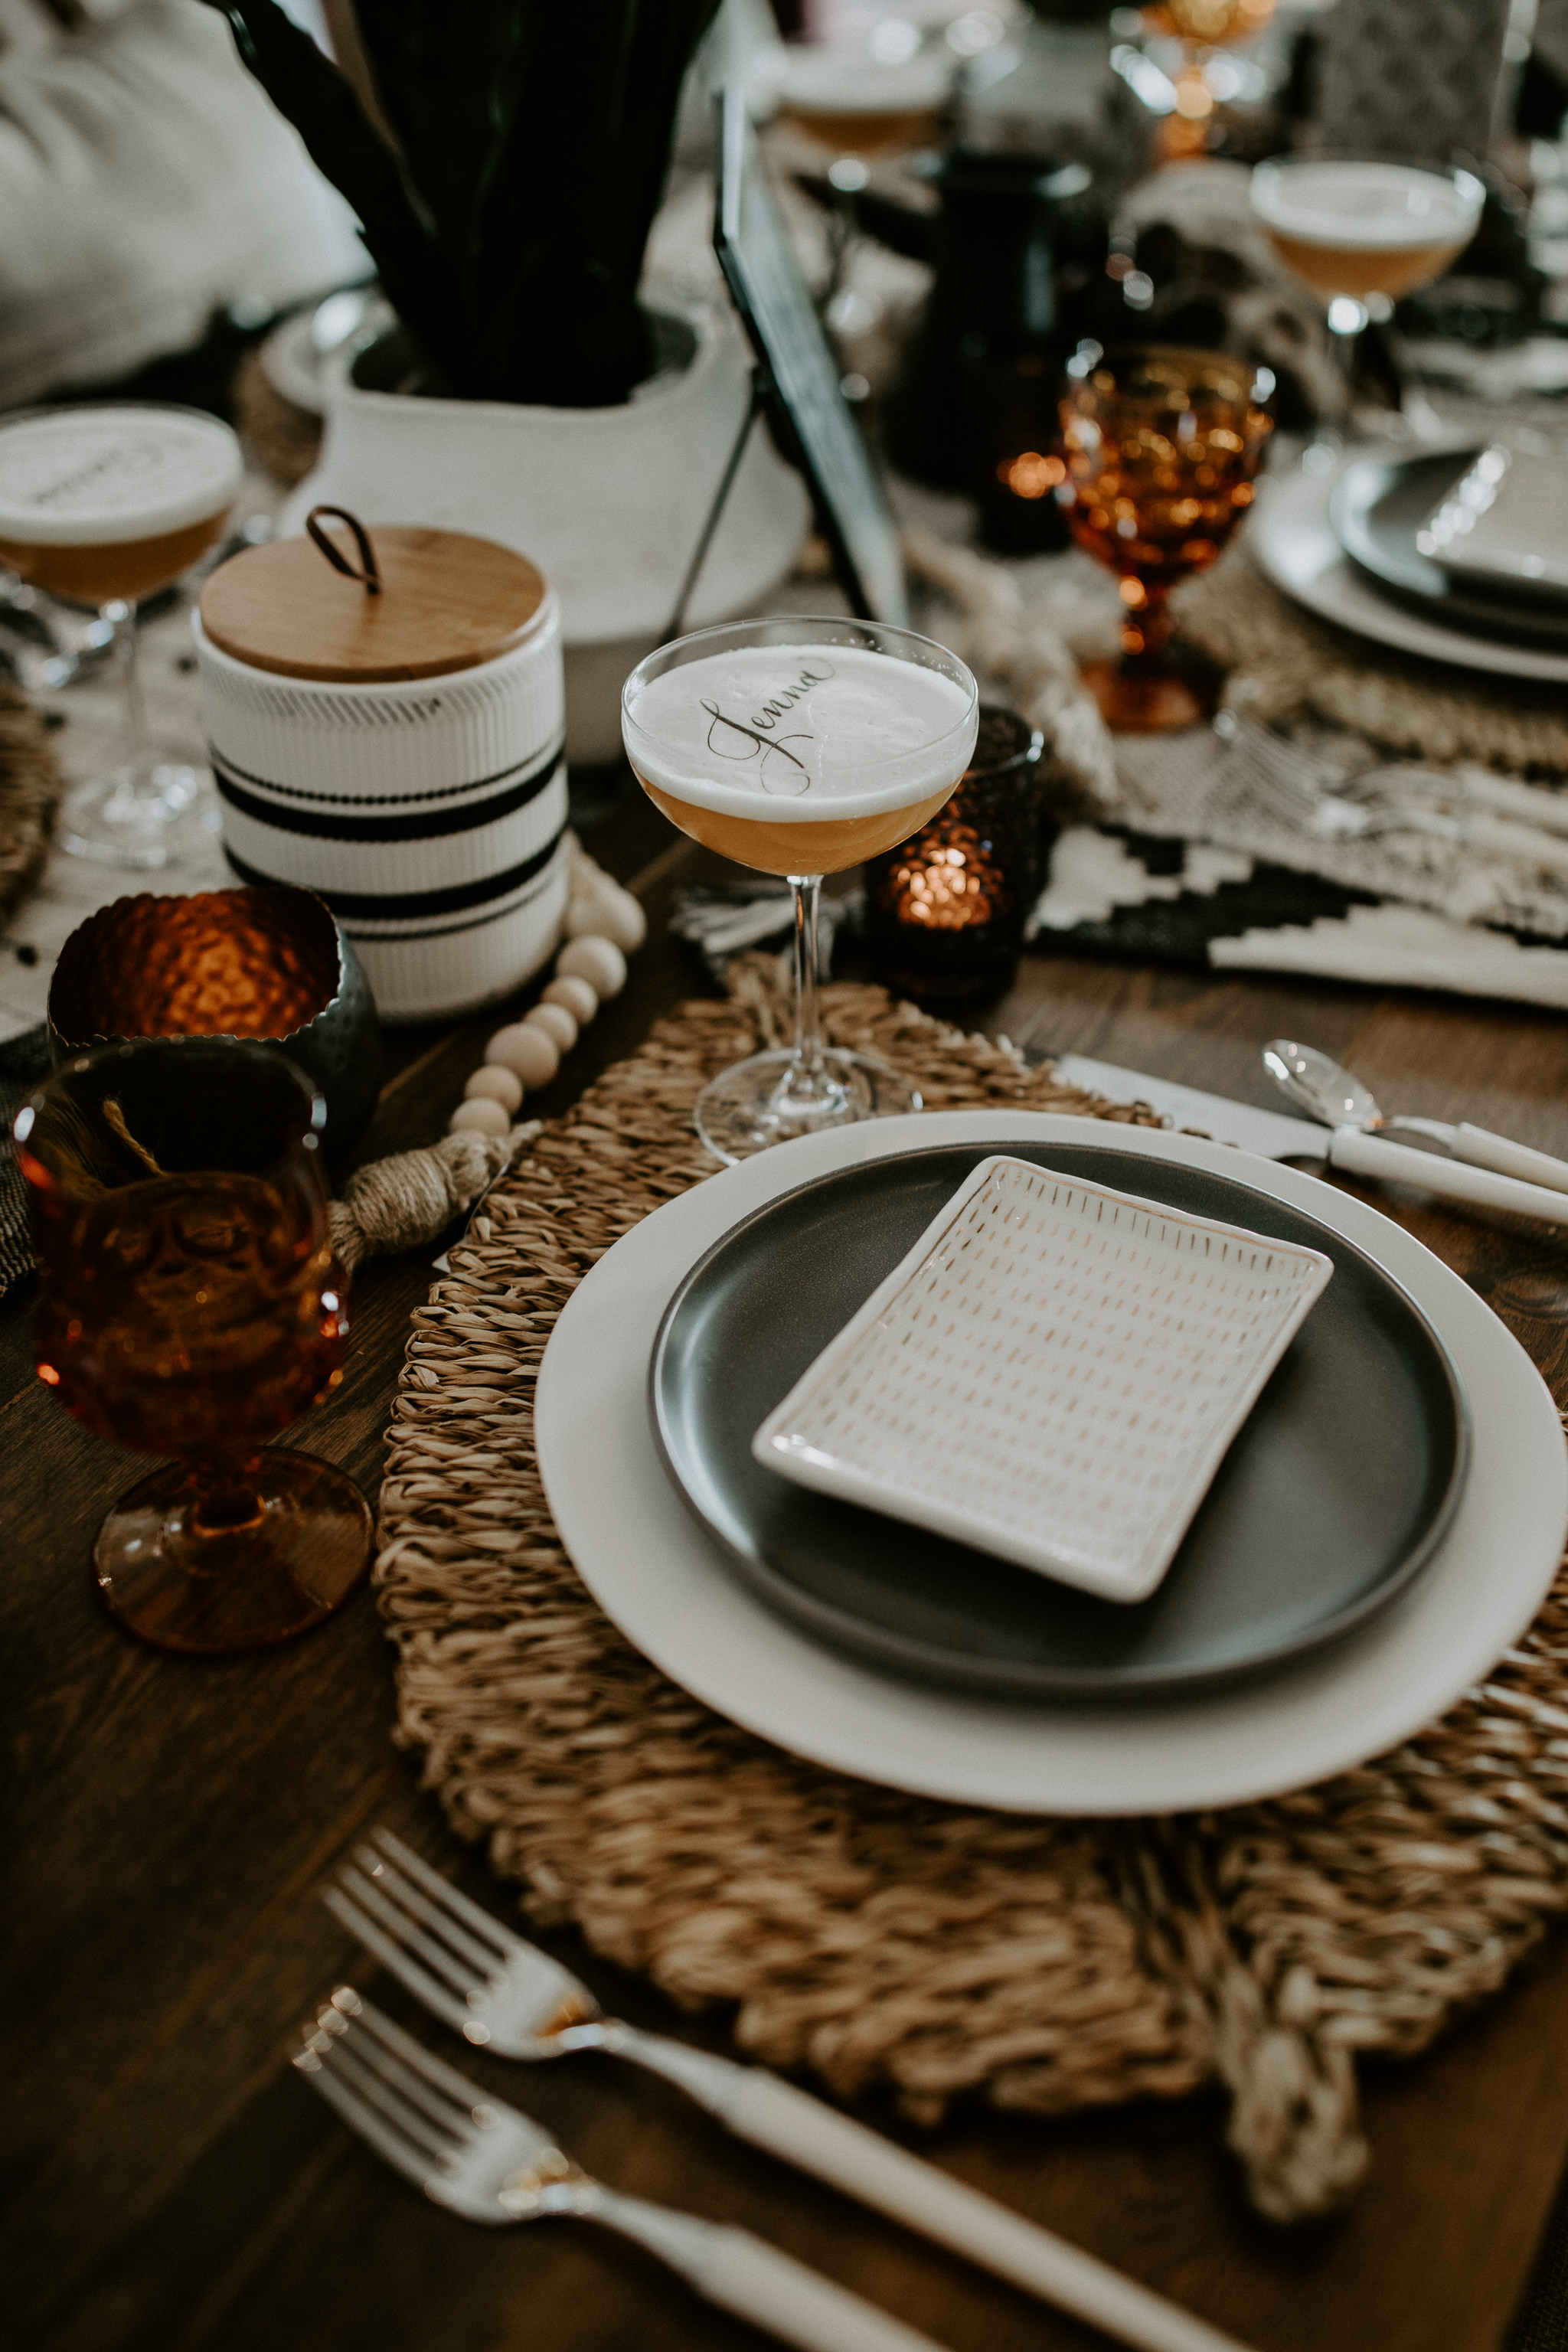 Casual and modern wedding tableware and wedding table setting